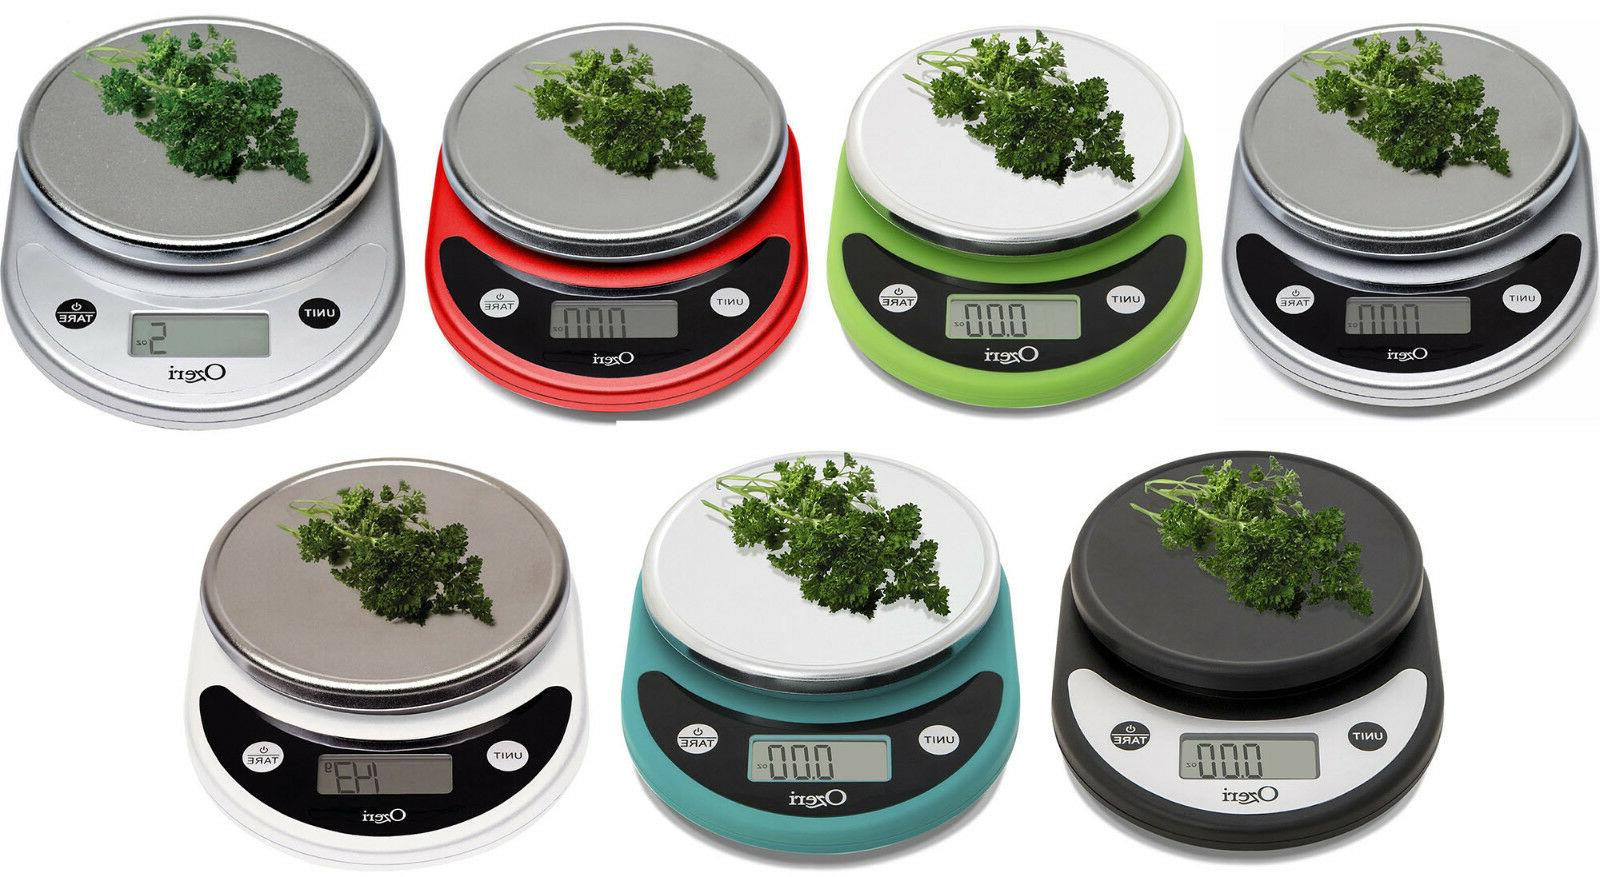 pronto digital multifunction kitchen and food scales